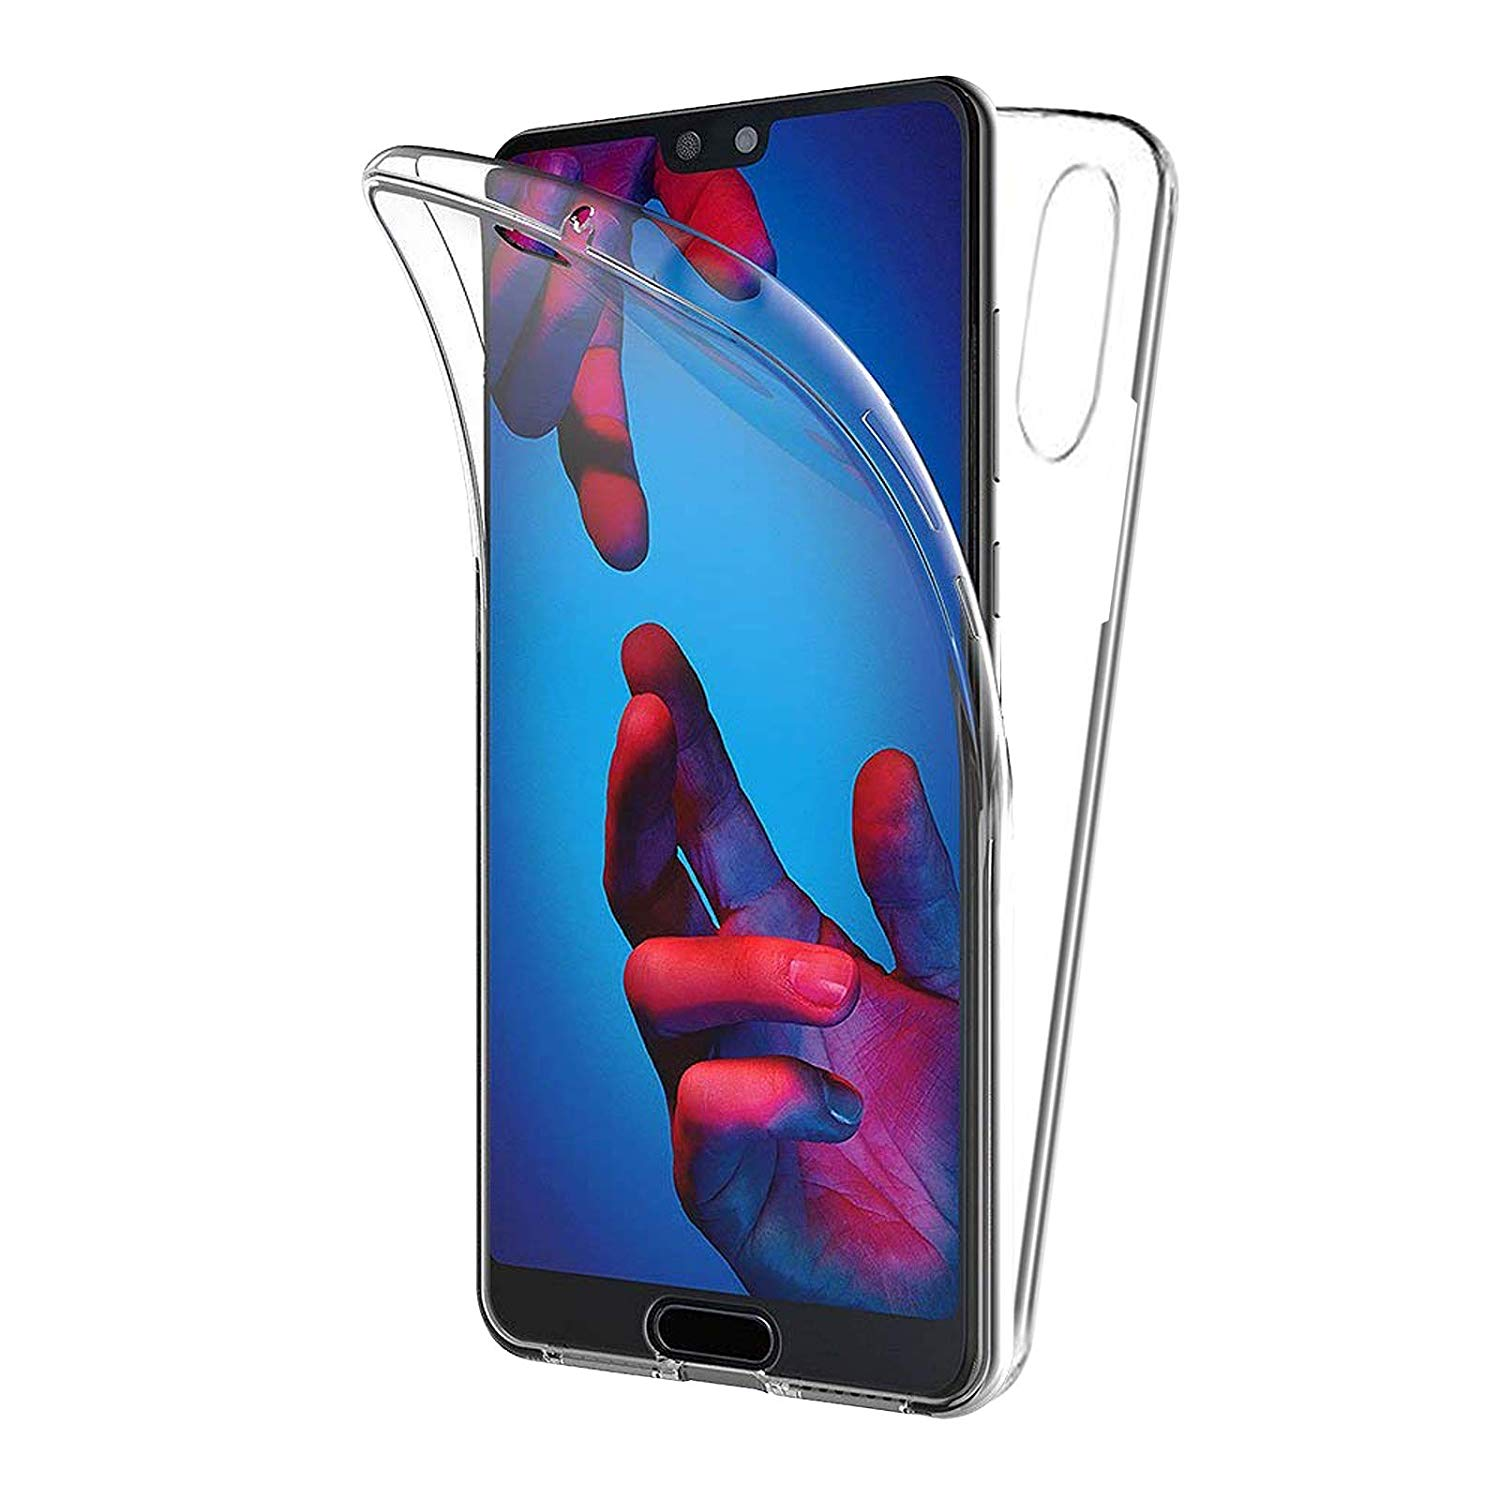 Huawei <font><b>P20</b></font> silicone <font><b>Case</b></font> full protection <font><b>360</b></font> full protection silicone <font><b>case</b></font> image